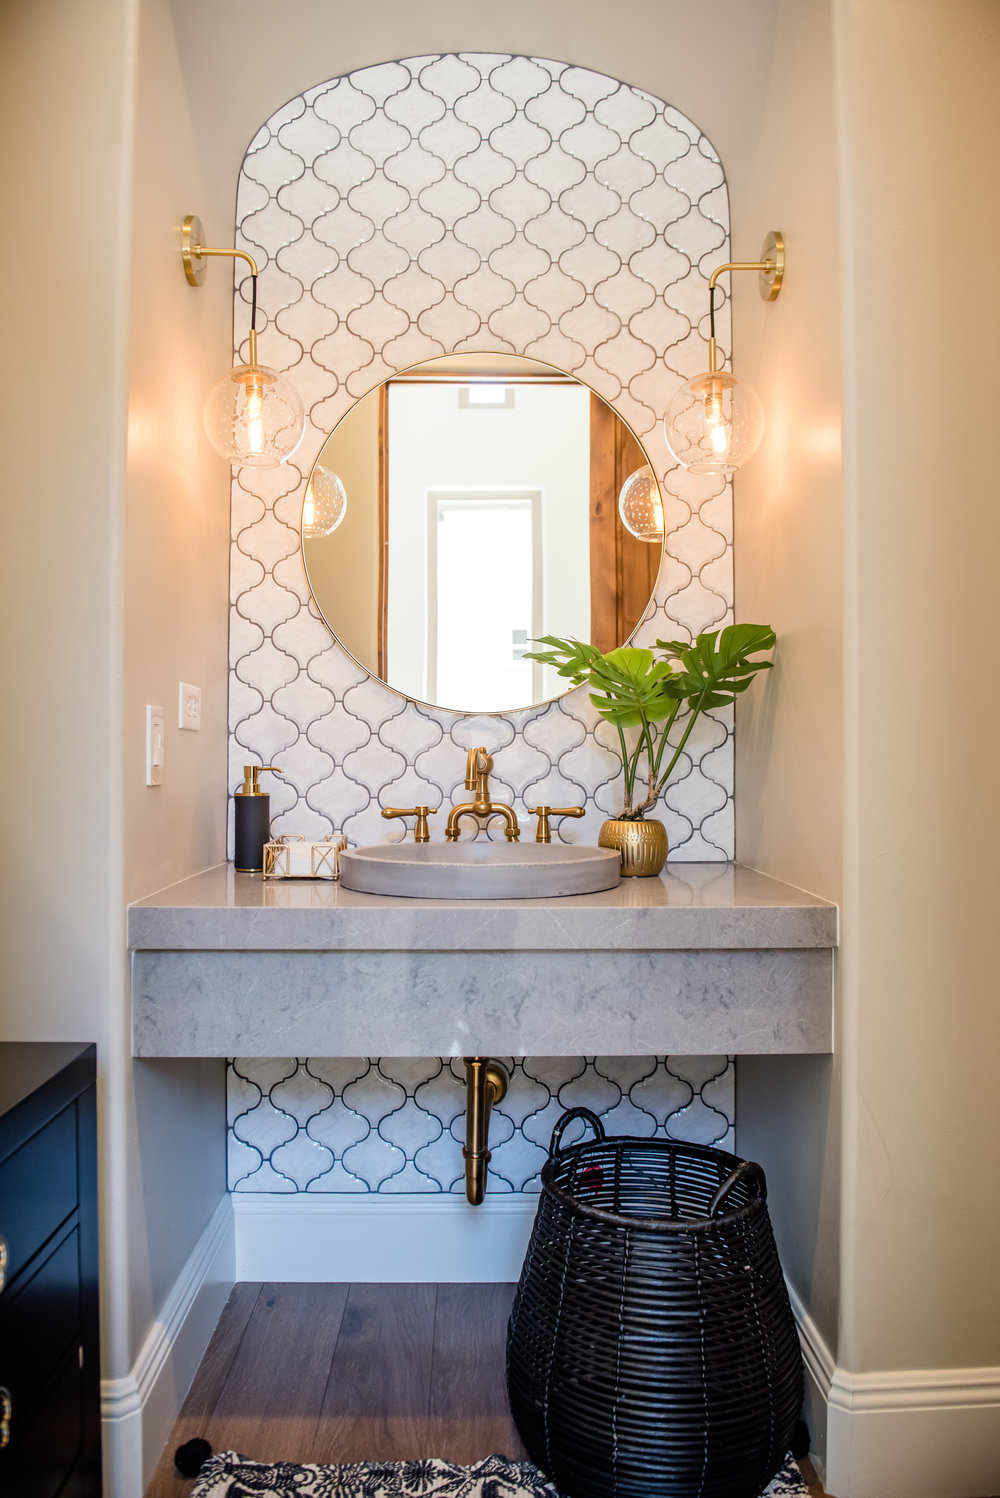 39+powderbath+tile+arabesque+brass+lighting+bohostyle.jpg